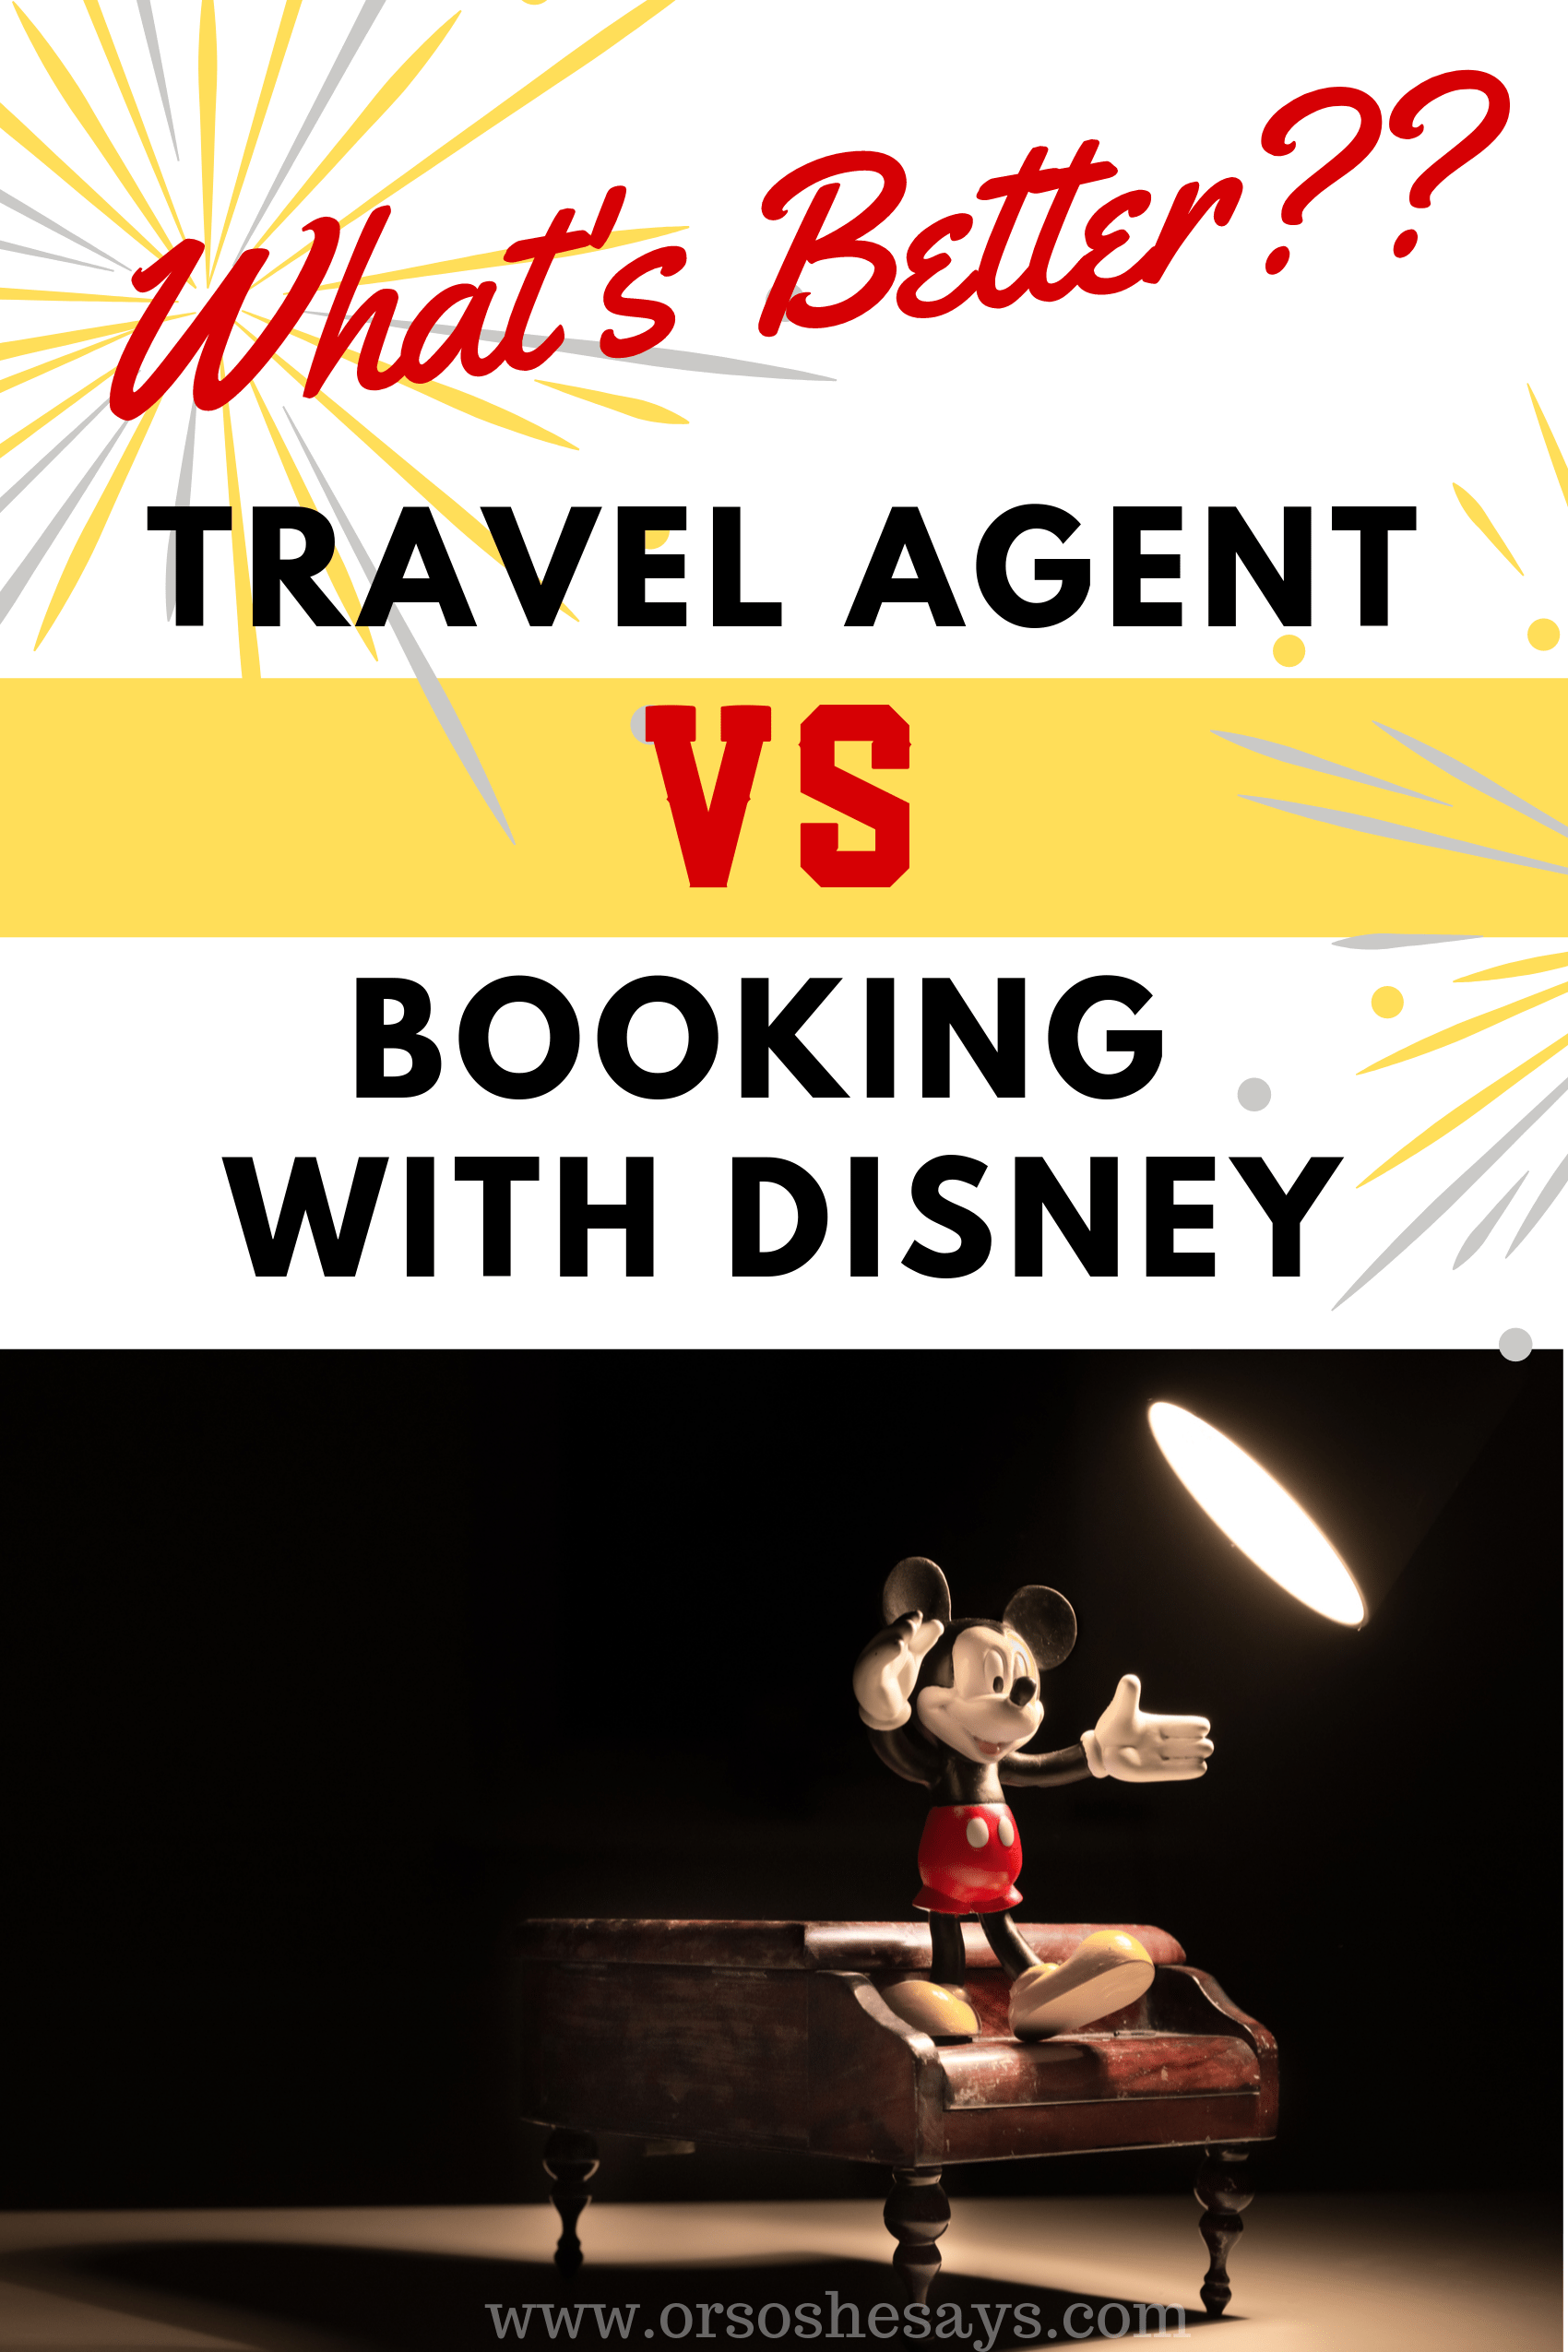 travel agent vs booking direct with Disney